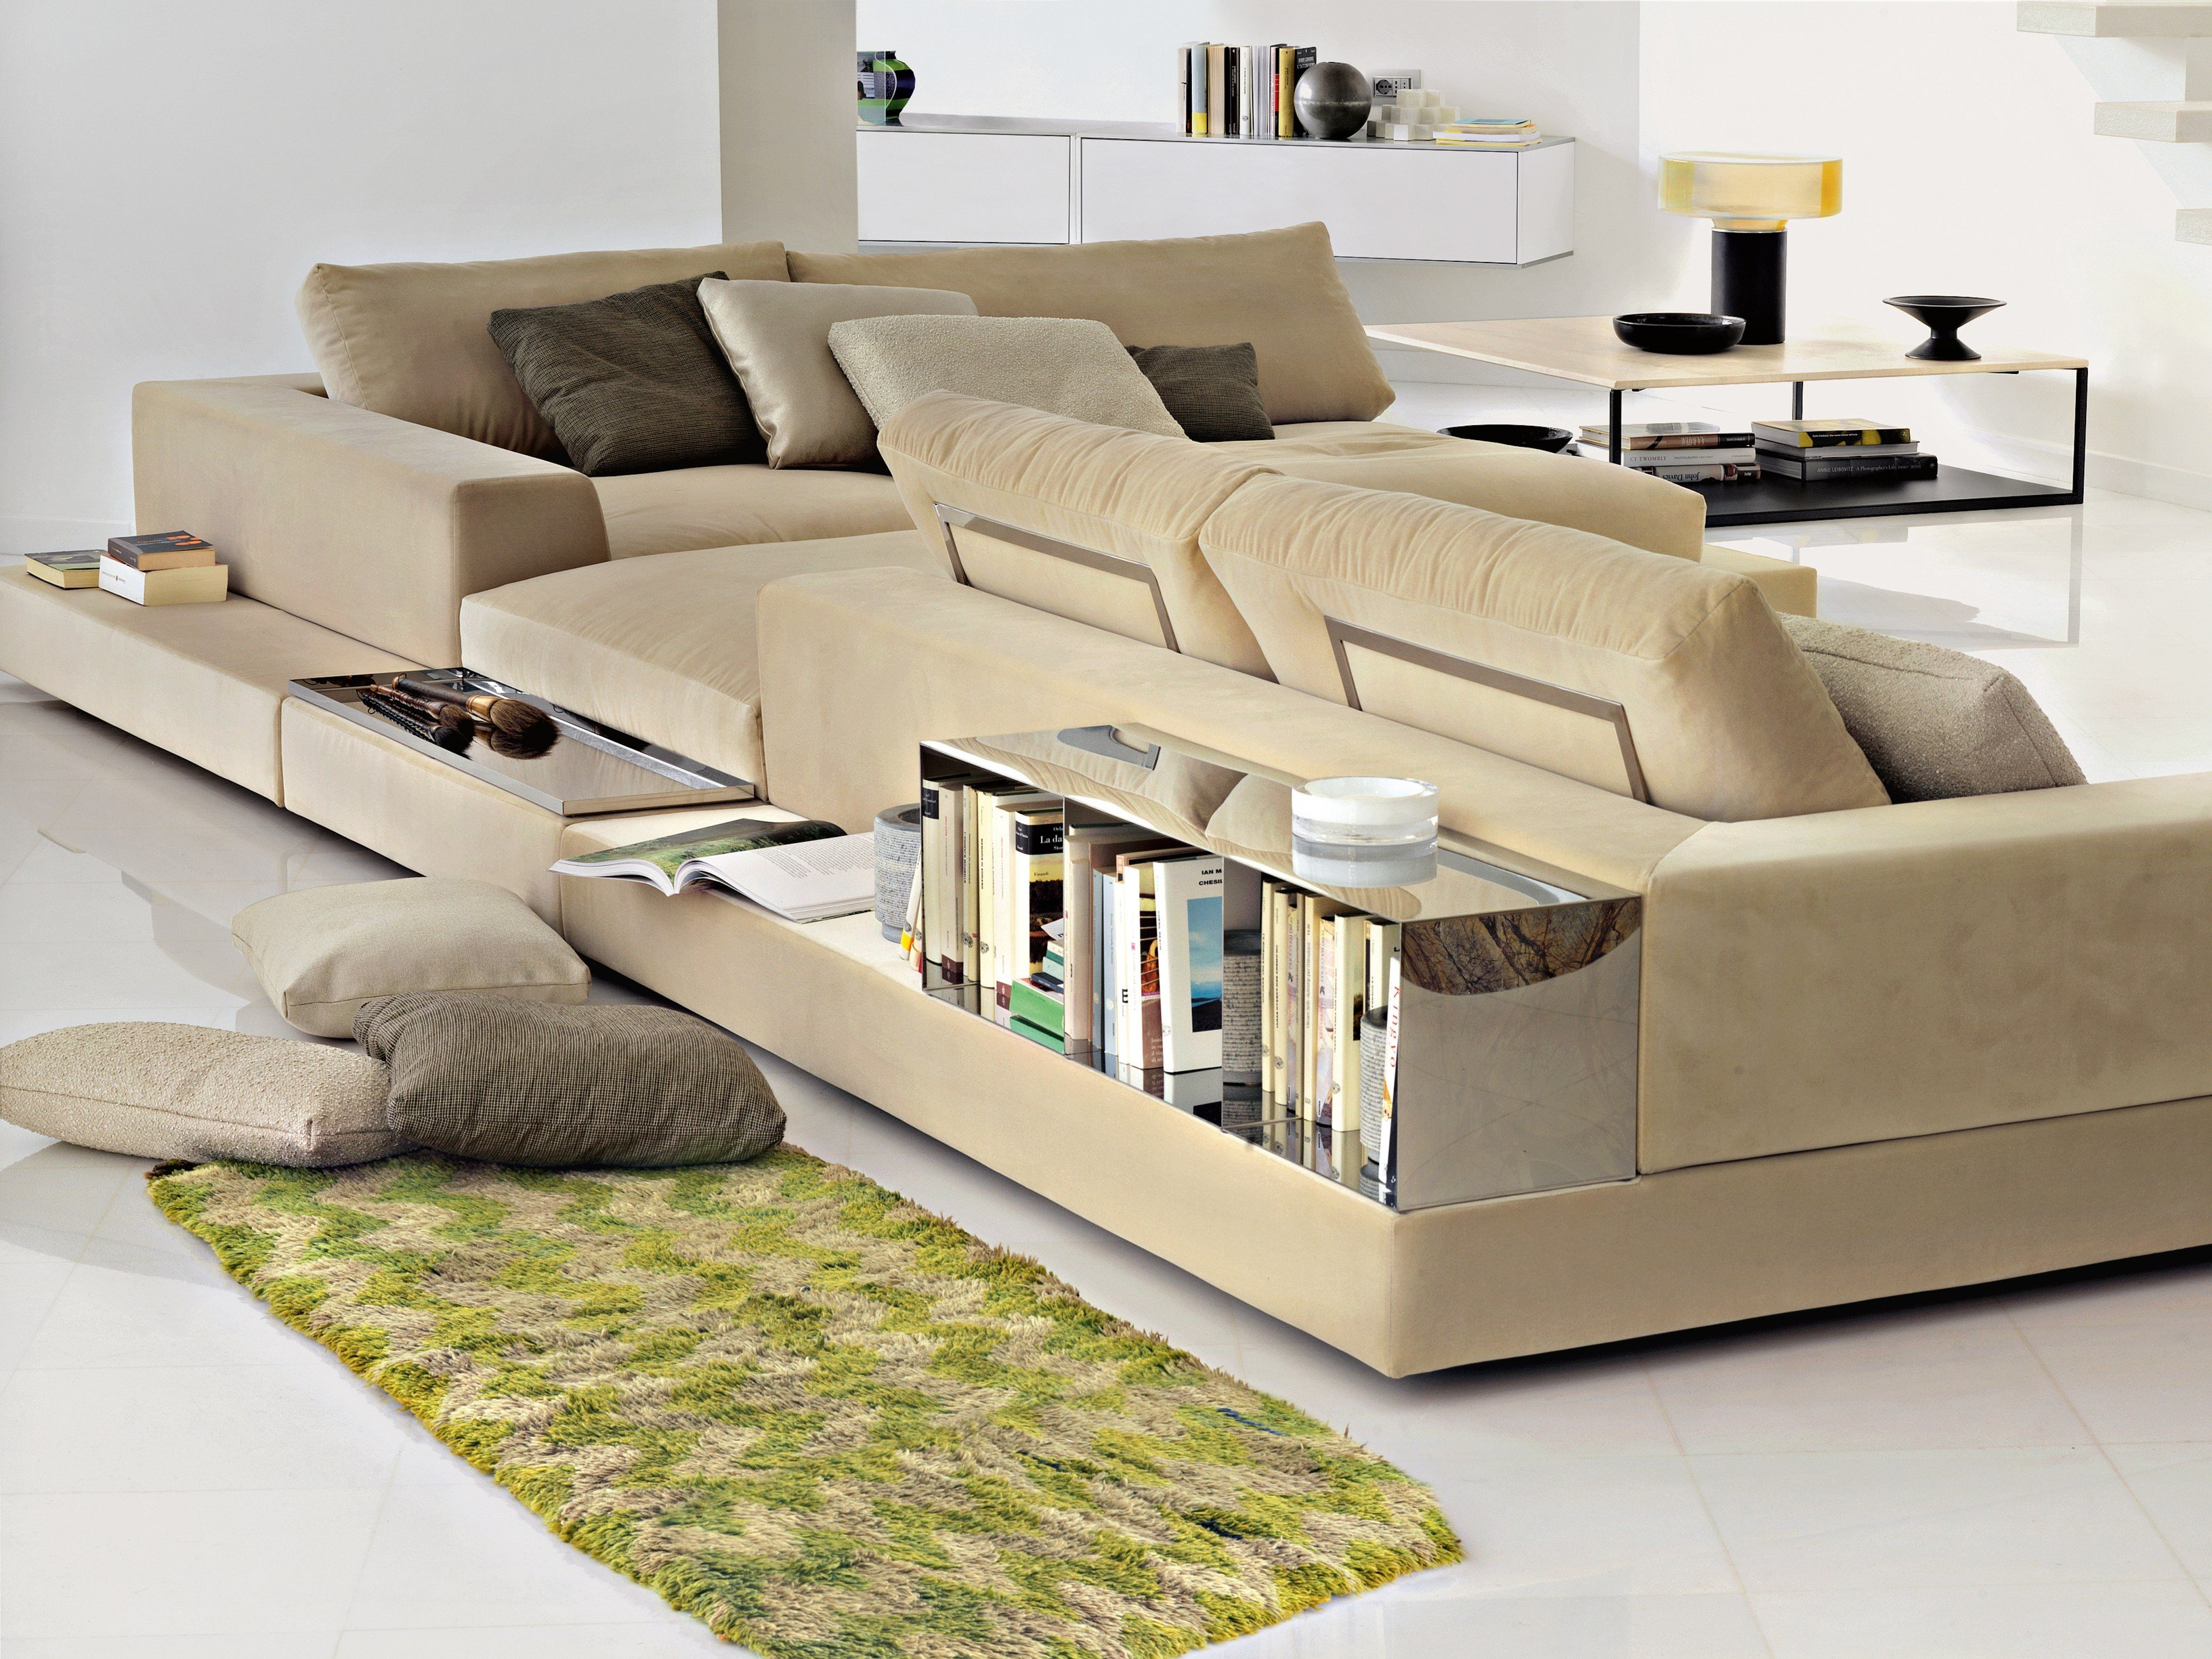 Sectional sofa plat by arketipo design studio memo for Design studio sectional sofa